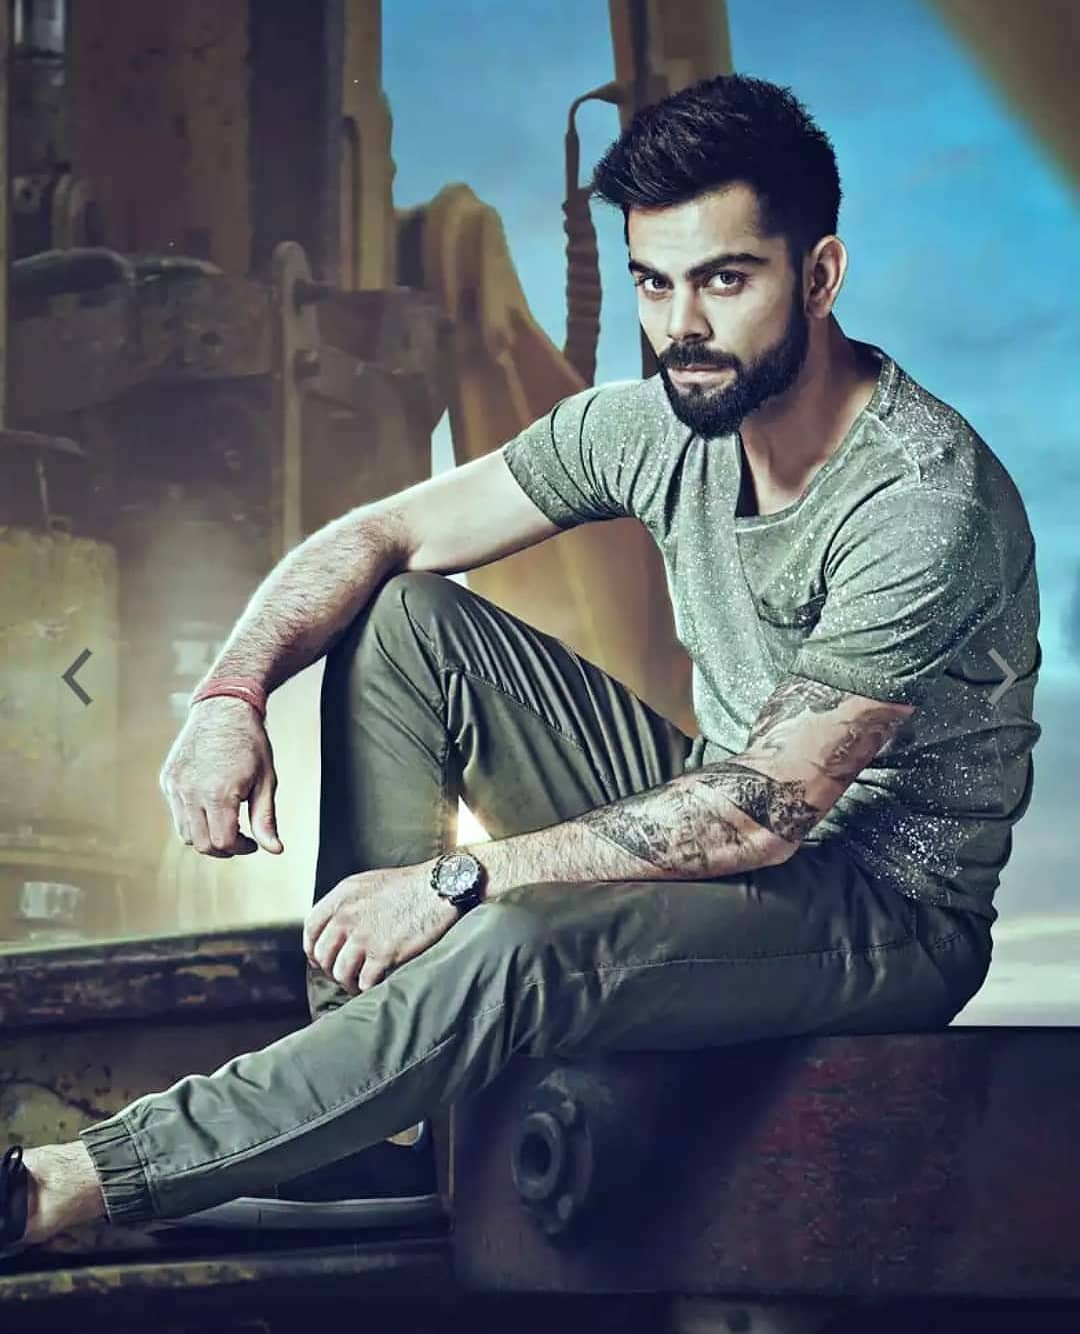 Rested From The Asia Cup, Virat Kohli Announces Acting Debut With A Dominant Poster.